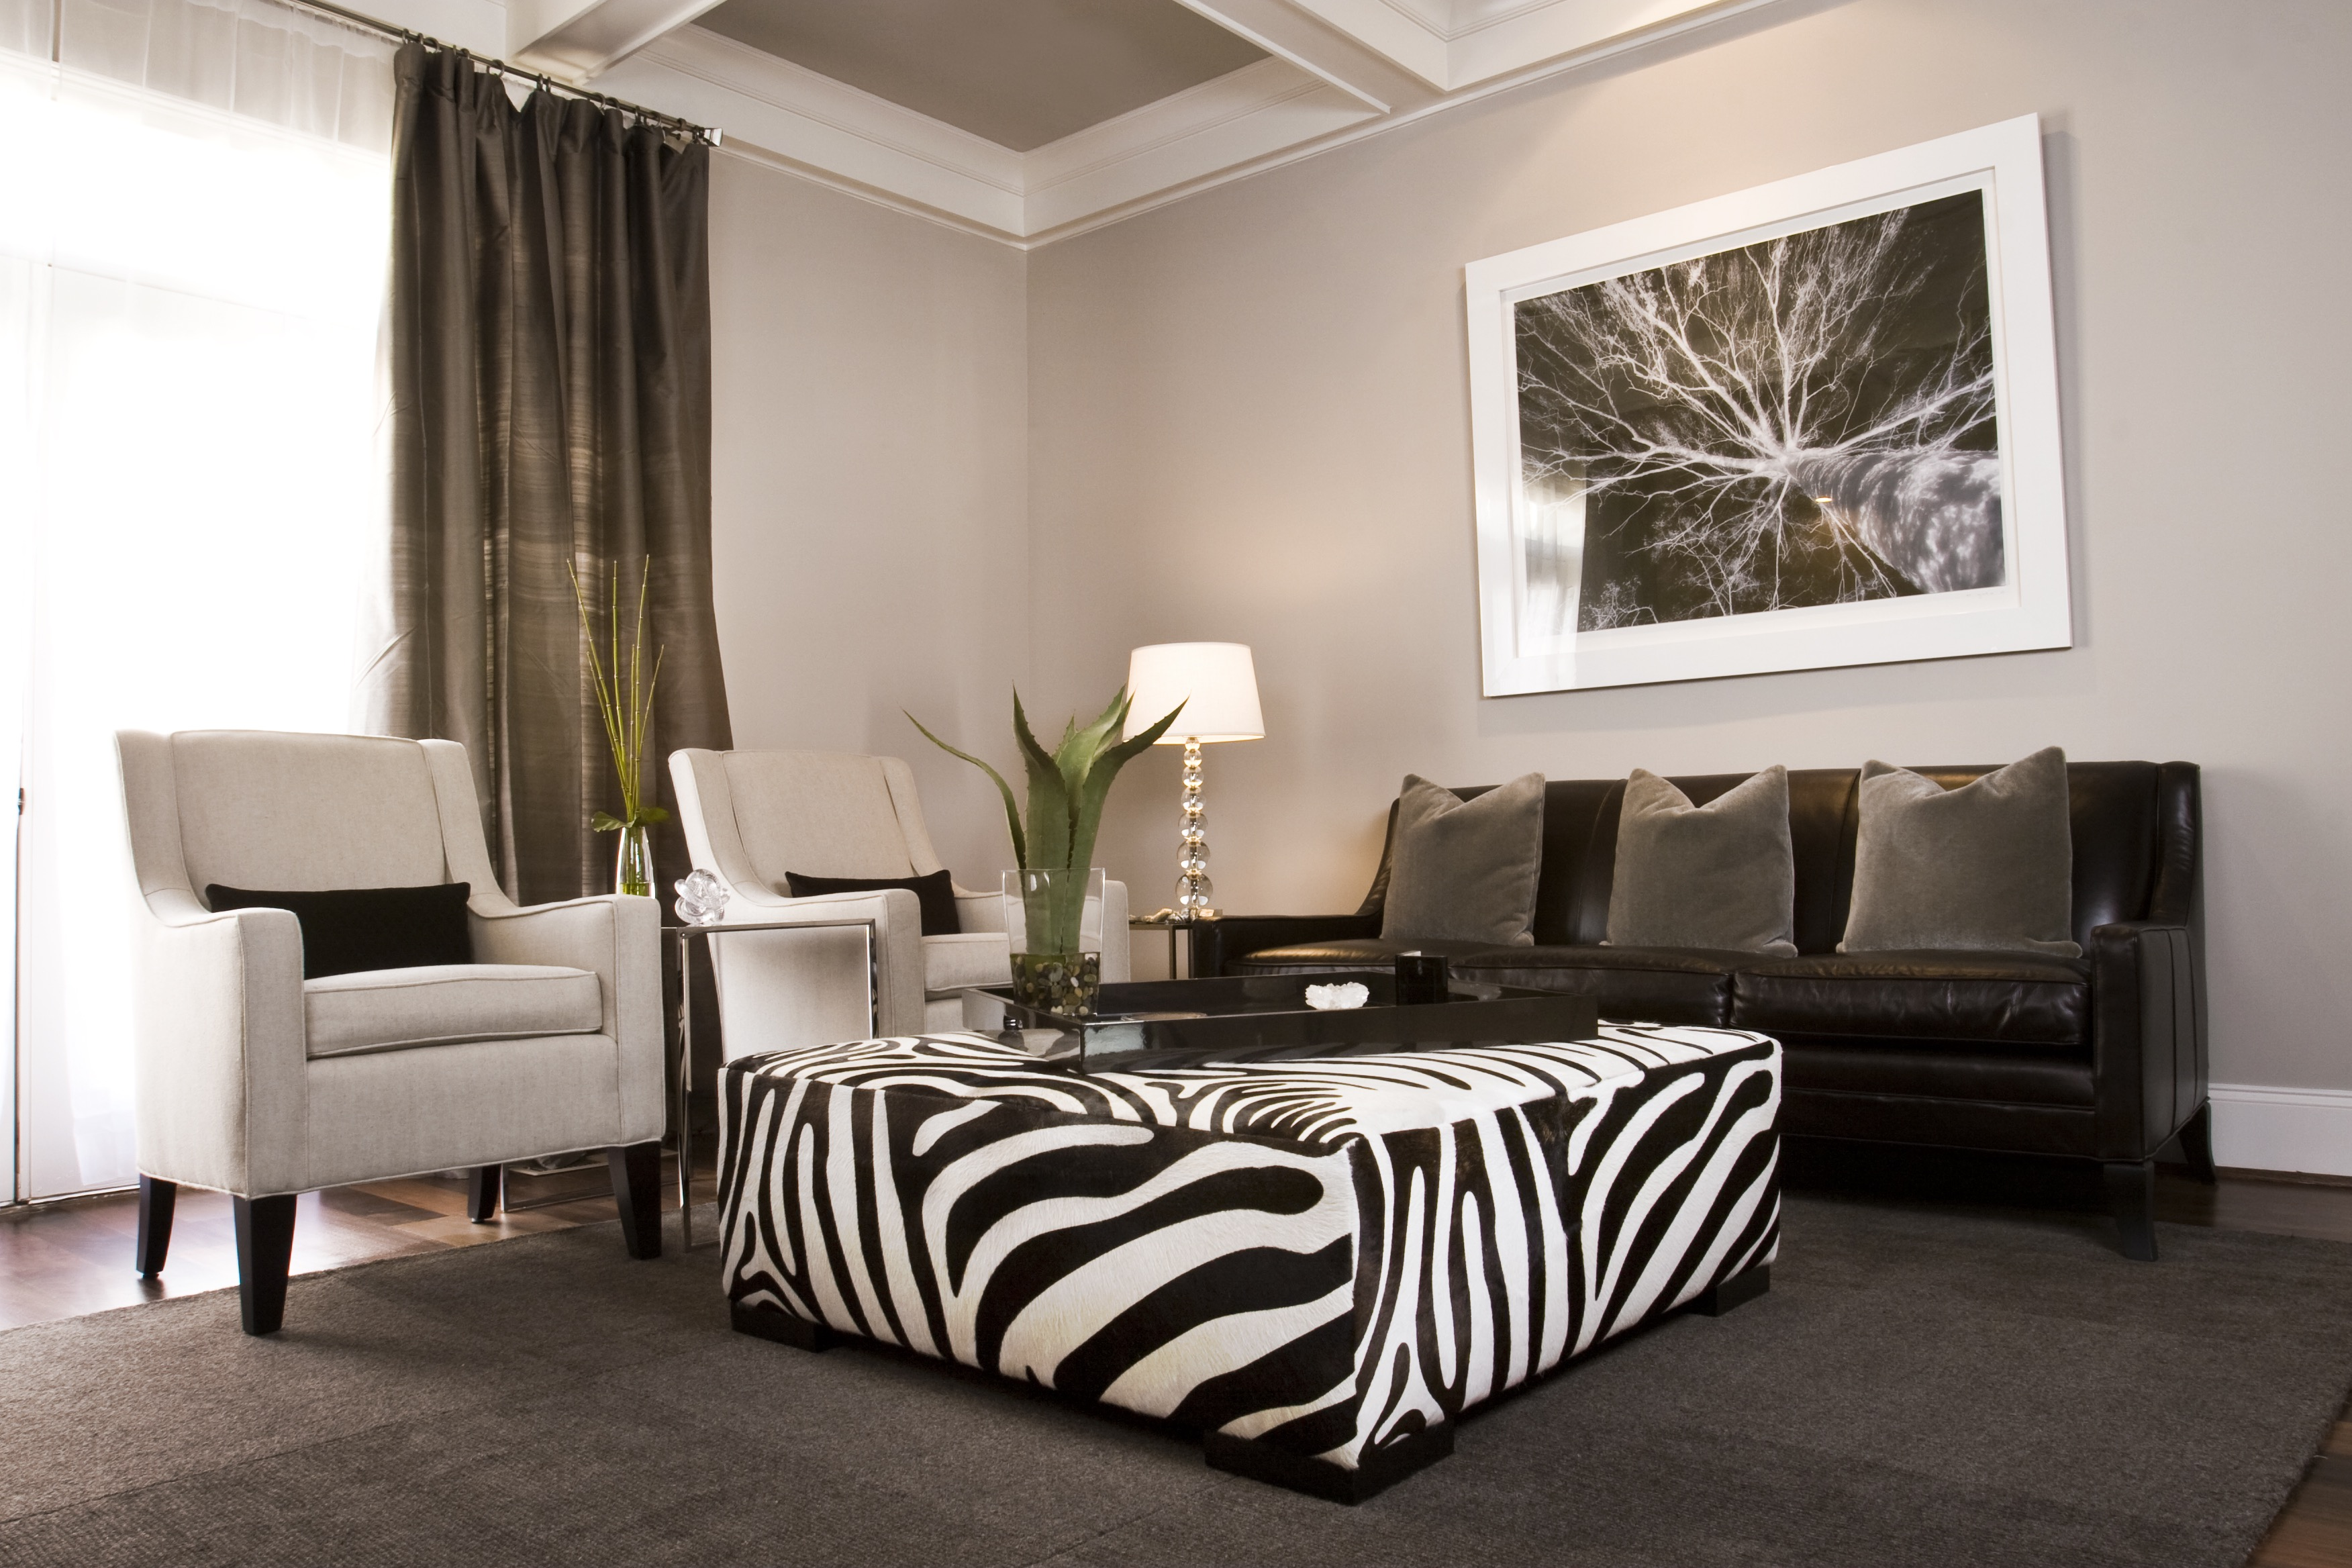 Gray Living Room Wall Color Features A Zebra Print Ottoman, A Black Leather Sofa And A Pair Of White Chairs (Image 10 of 20)